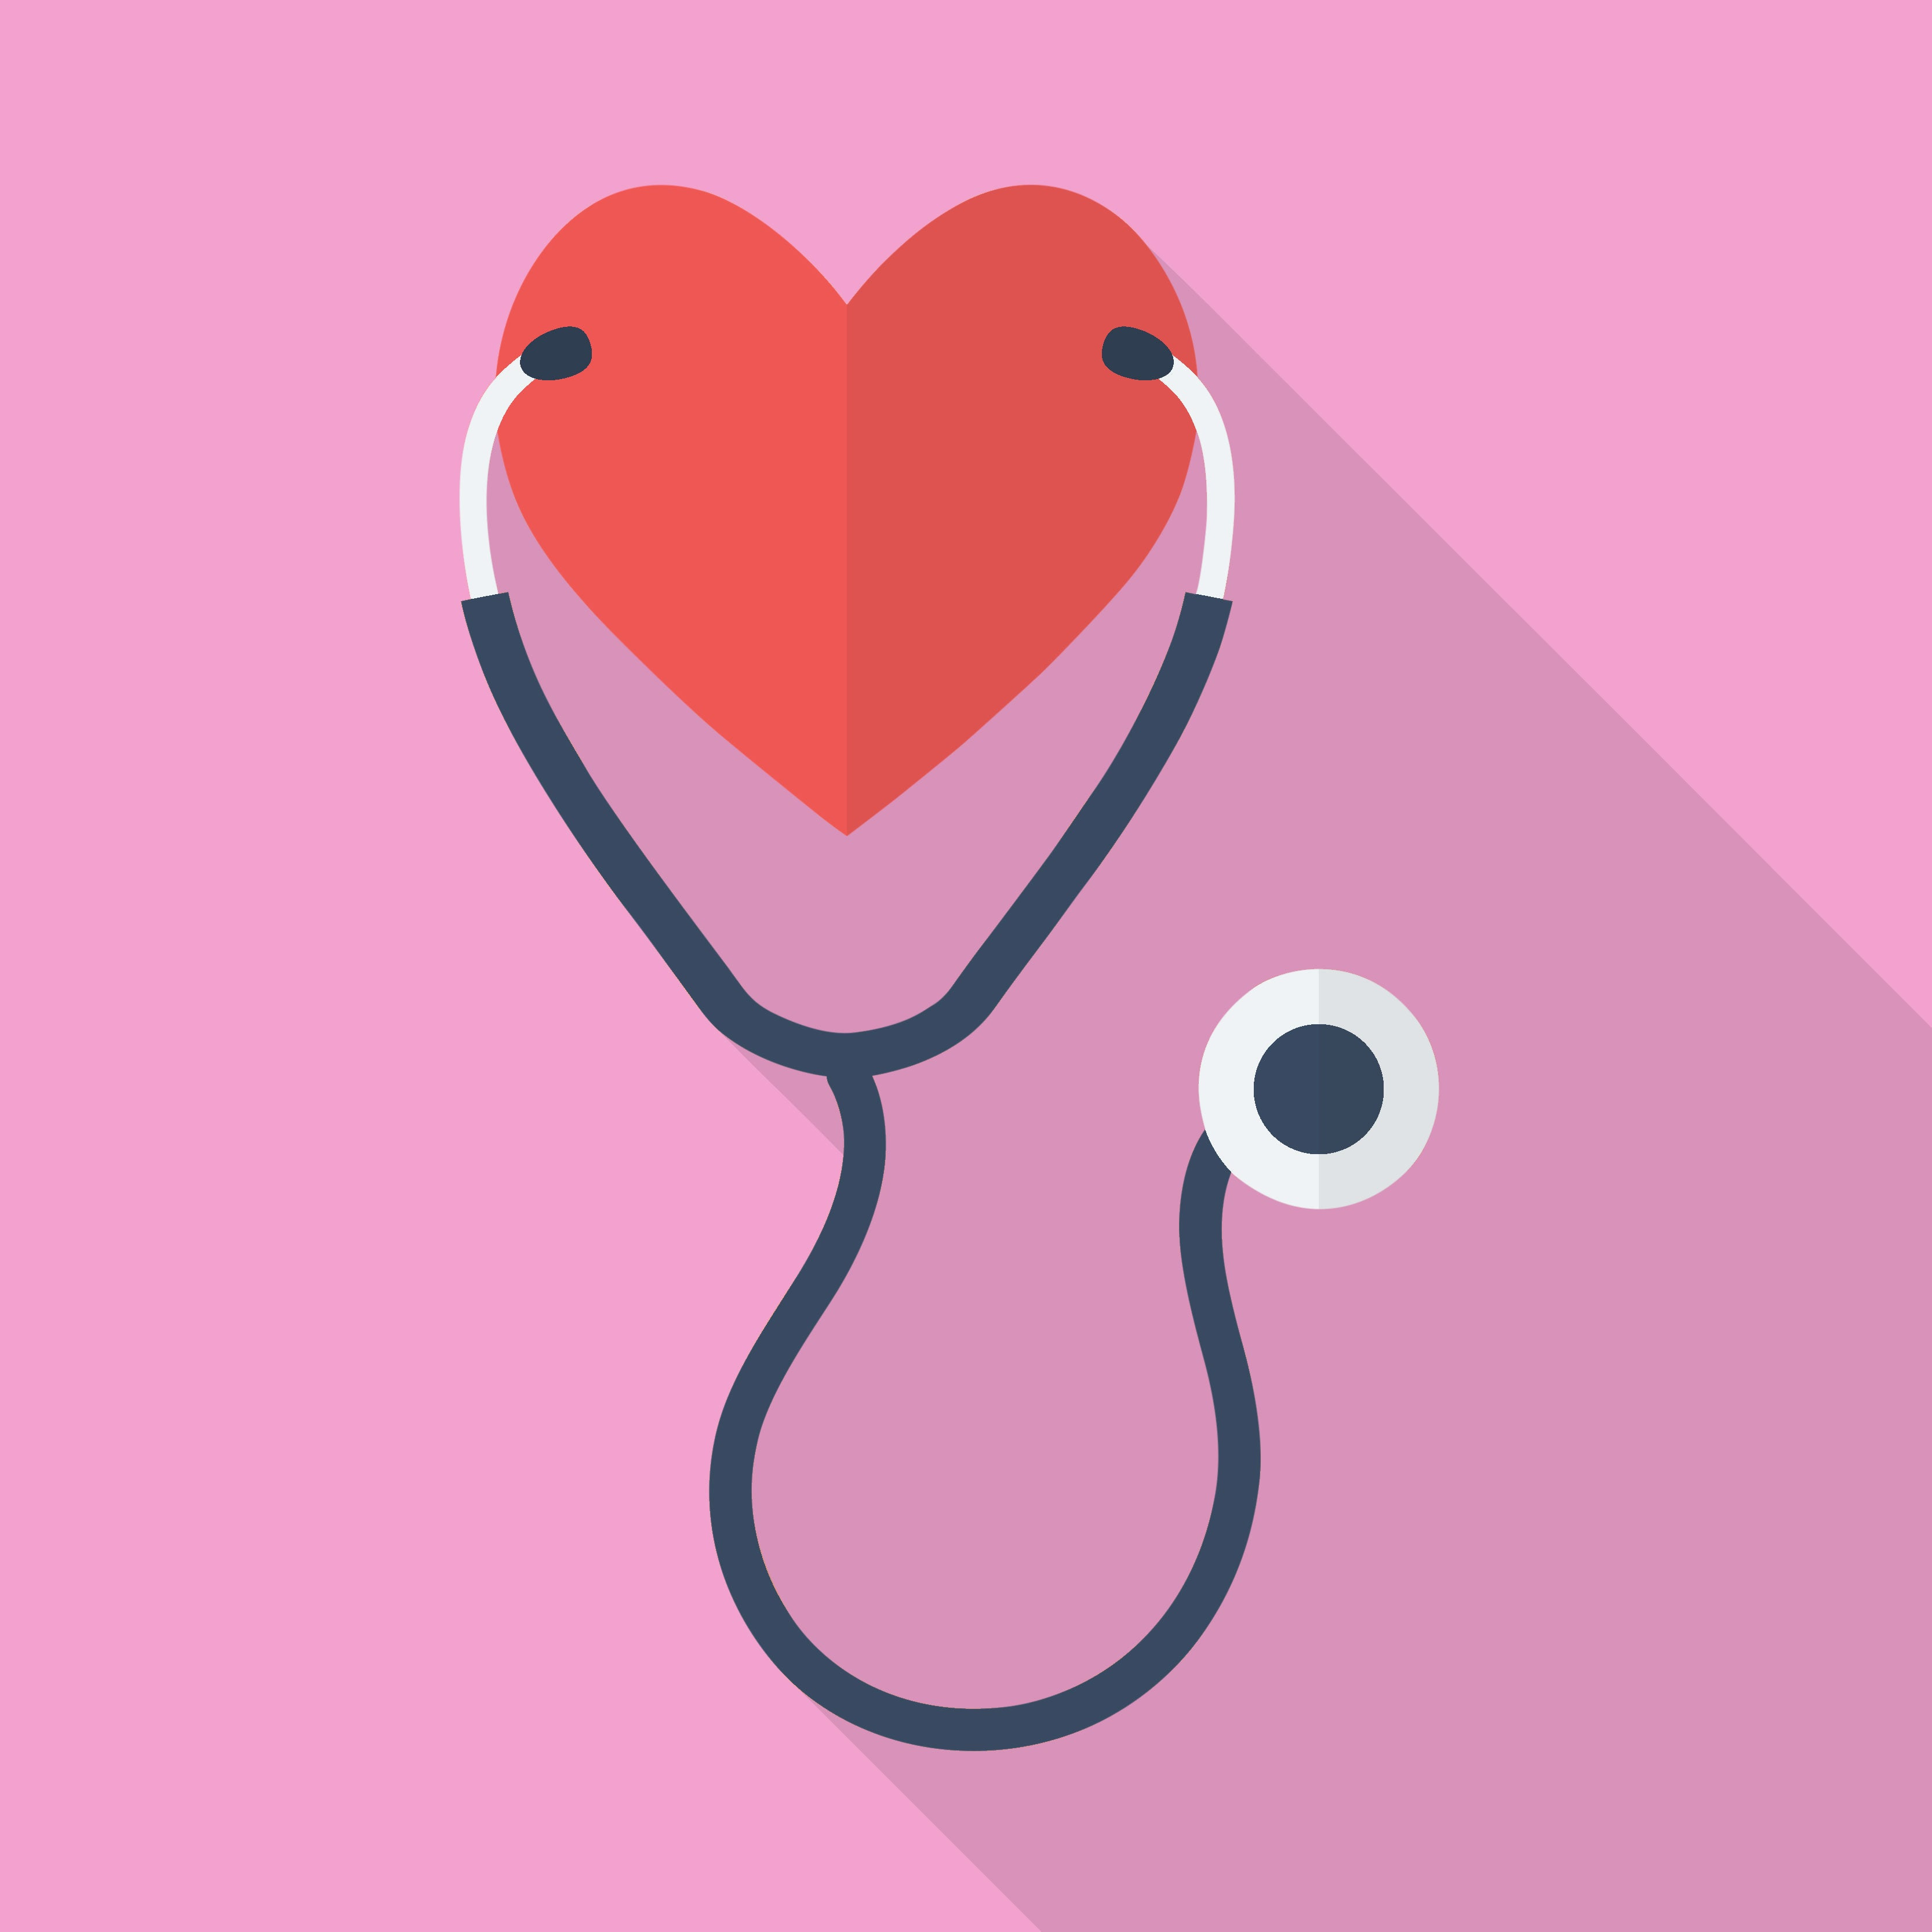 It's Time To Checkup On Your Heart! Take Inventory Of Your Choices and Desires For The New Year